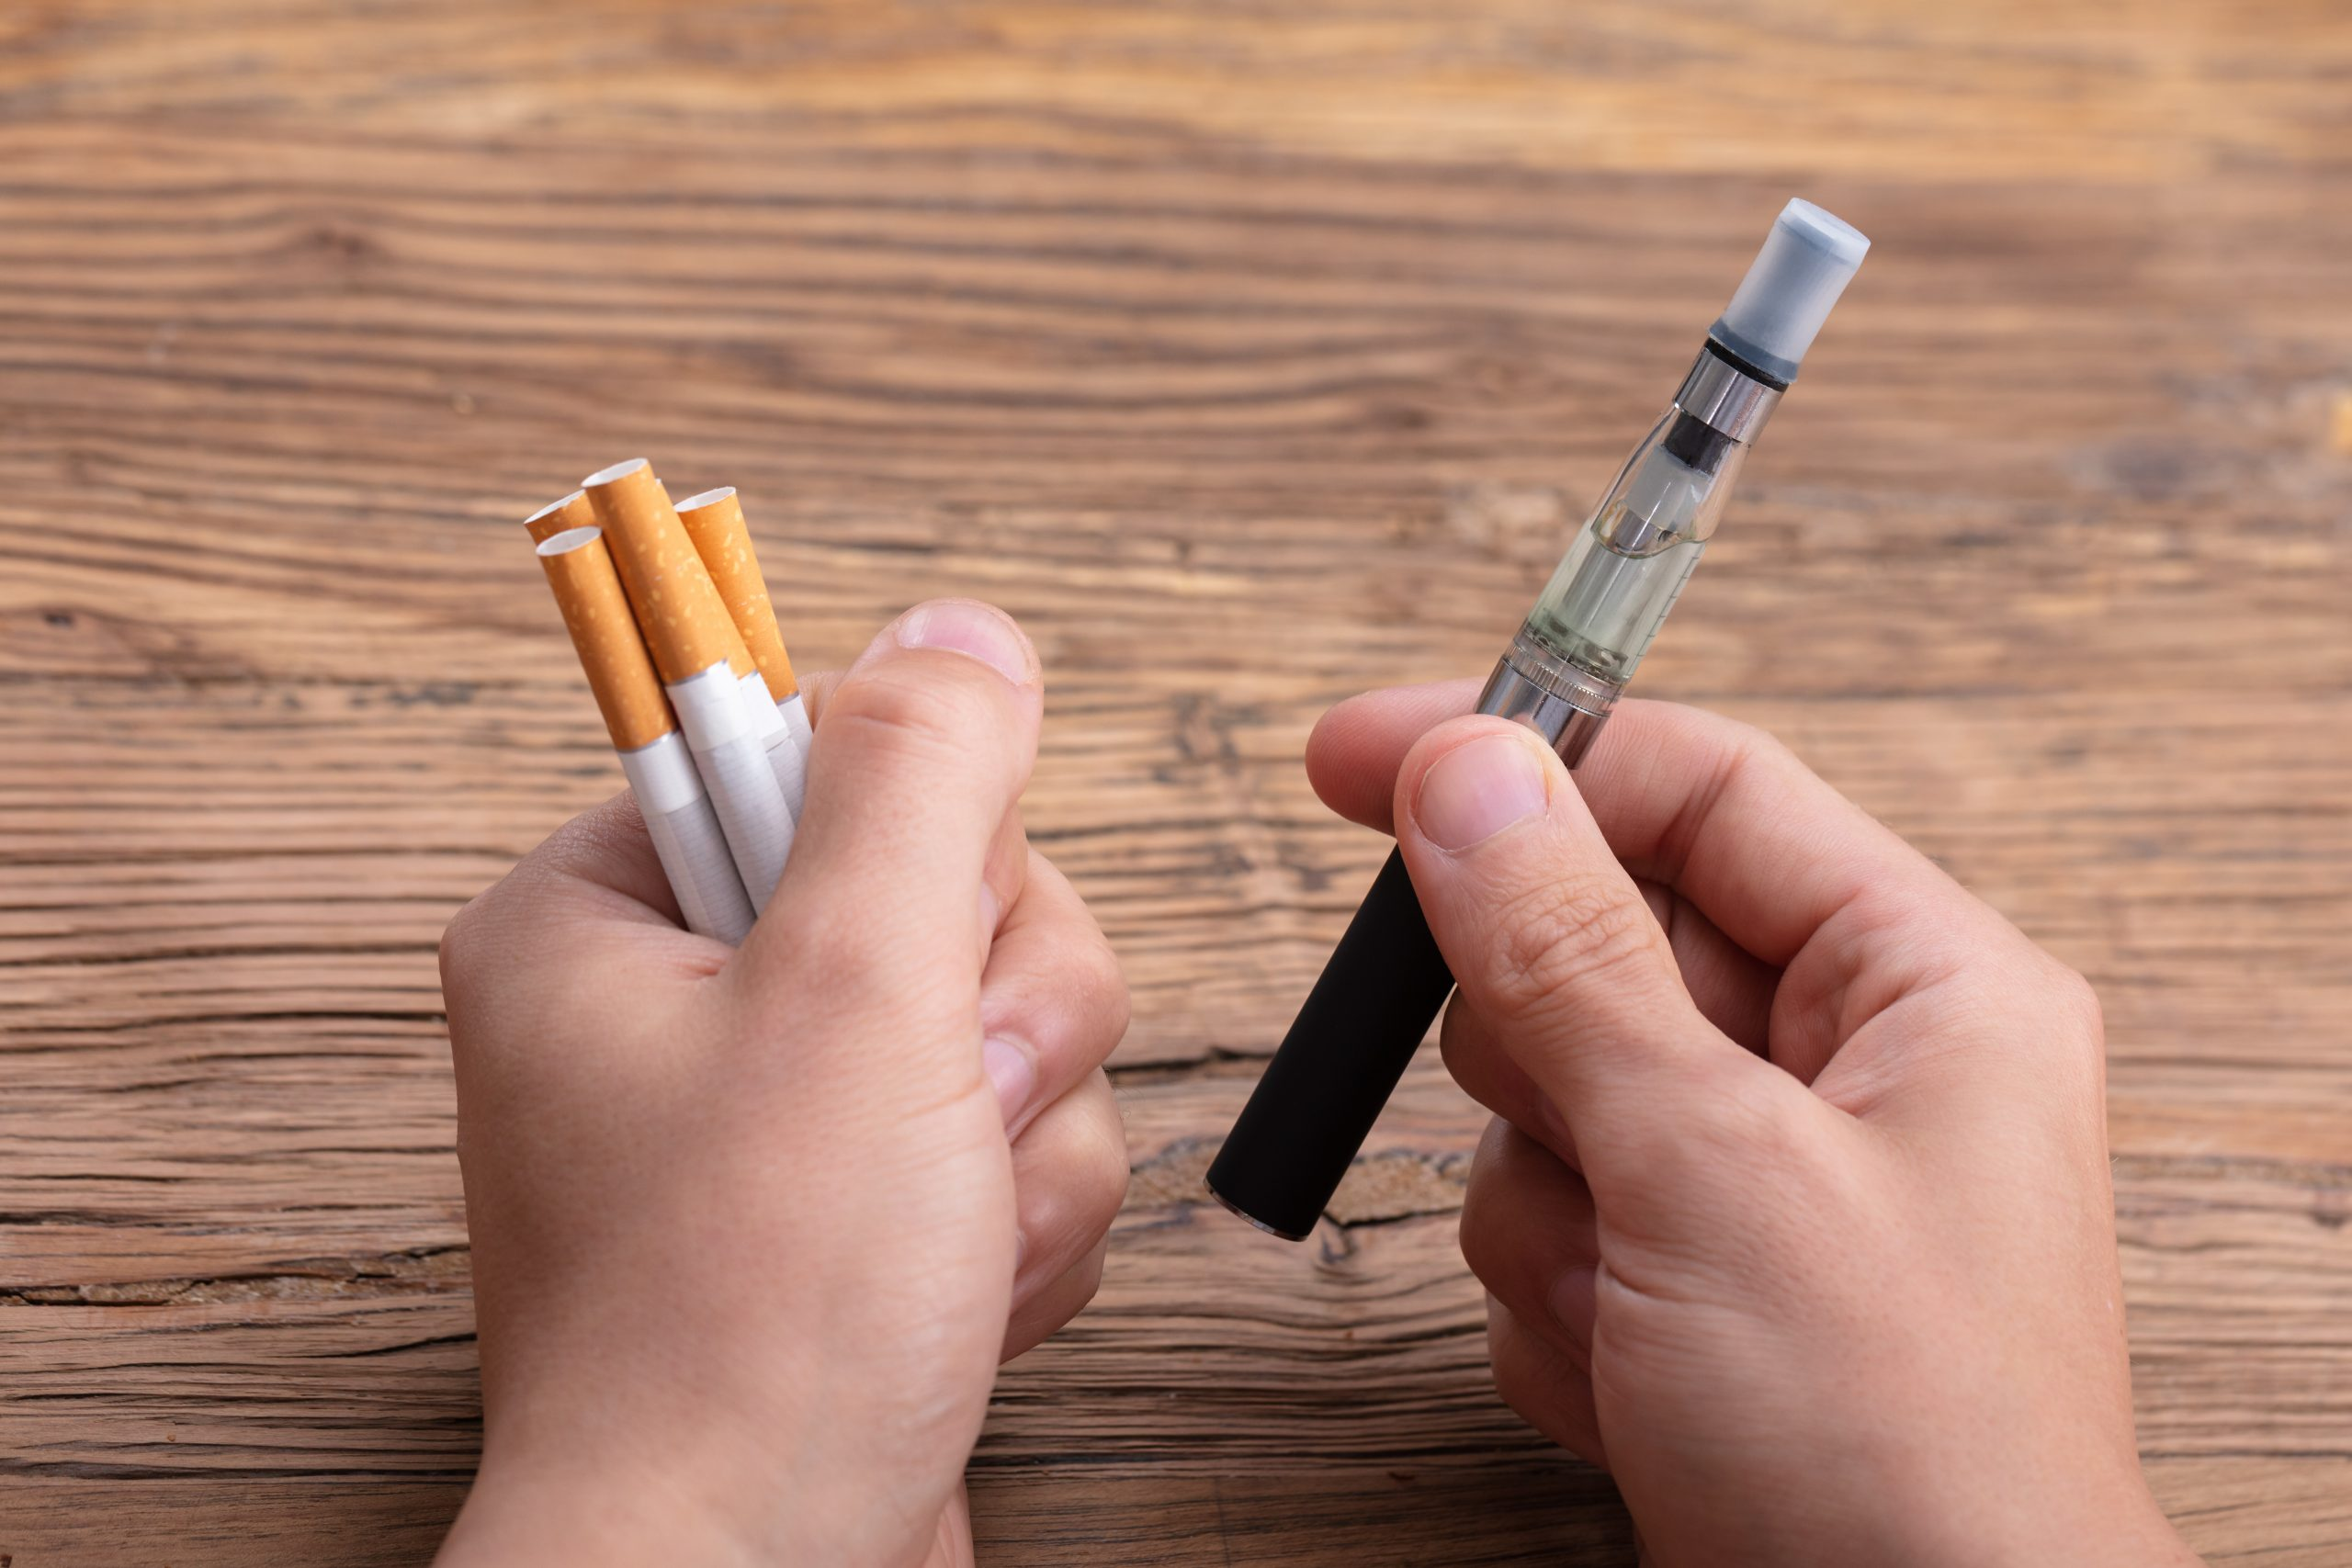 e-cigarettes are most lethal for the heart